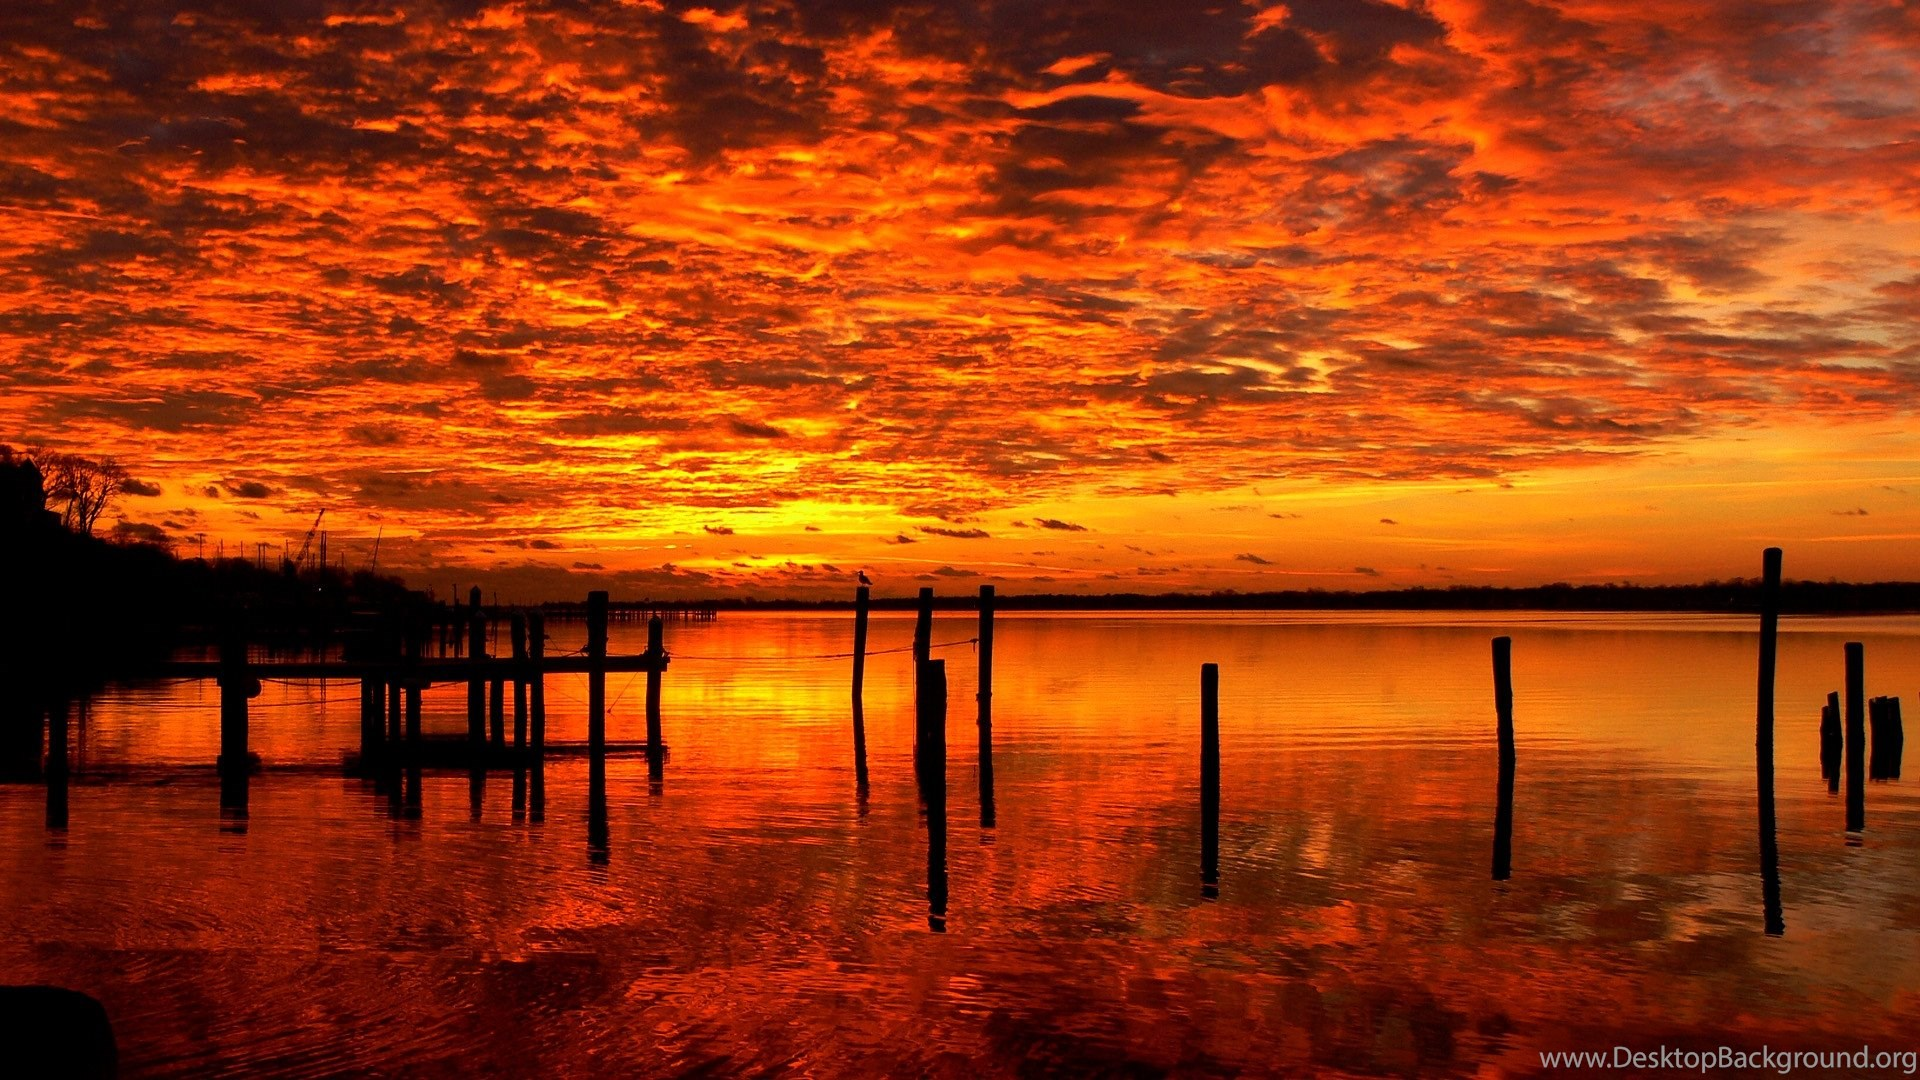 Hd dramatic sunrise wallpapers desktop background - Dramatic wallpaper ...